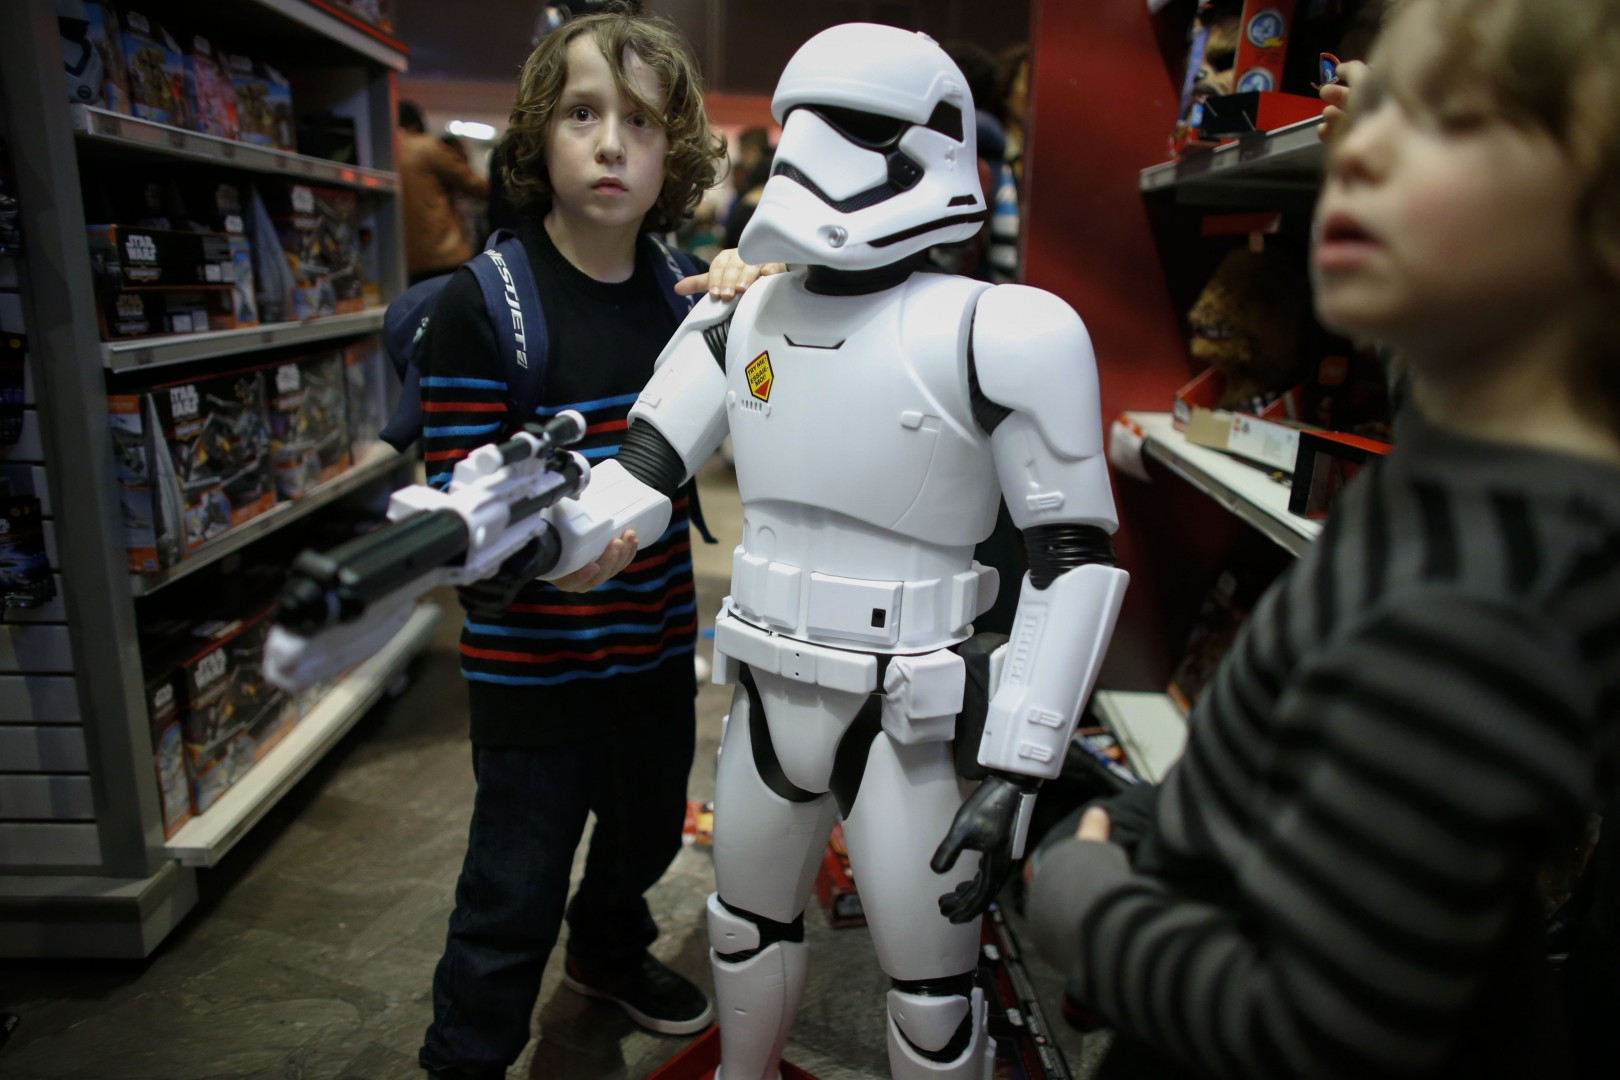 Star Wars toys and merchandise have been attacked by a former maker